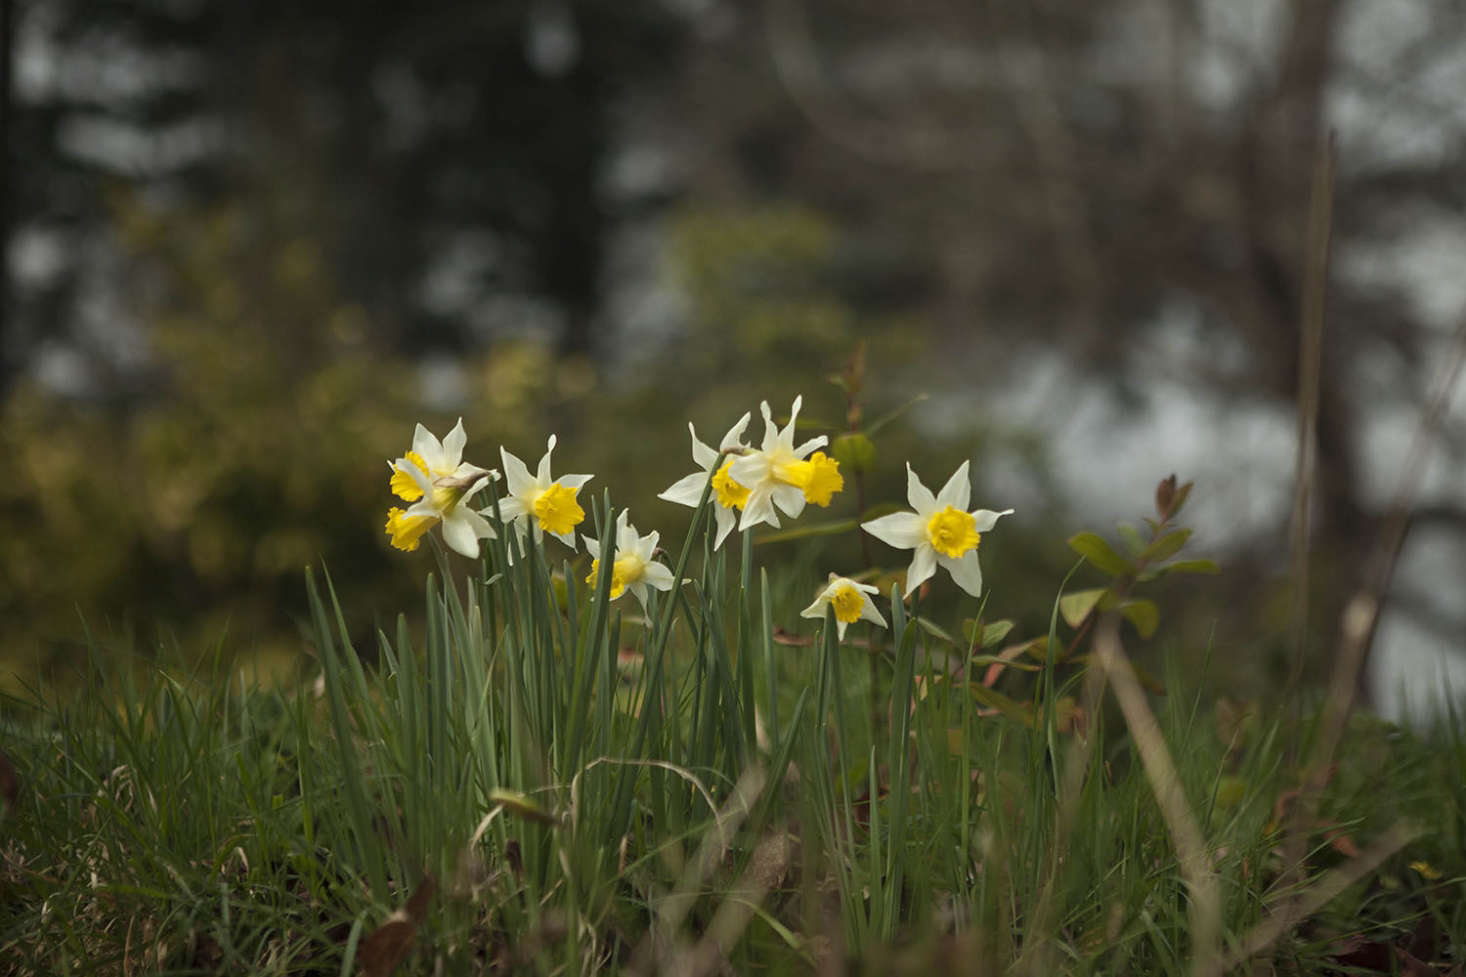 Narcissus at Madresfield Court. See more atGarden Visit: Daffodil Days at Madresfield Court.Photograph by Jim Powell.